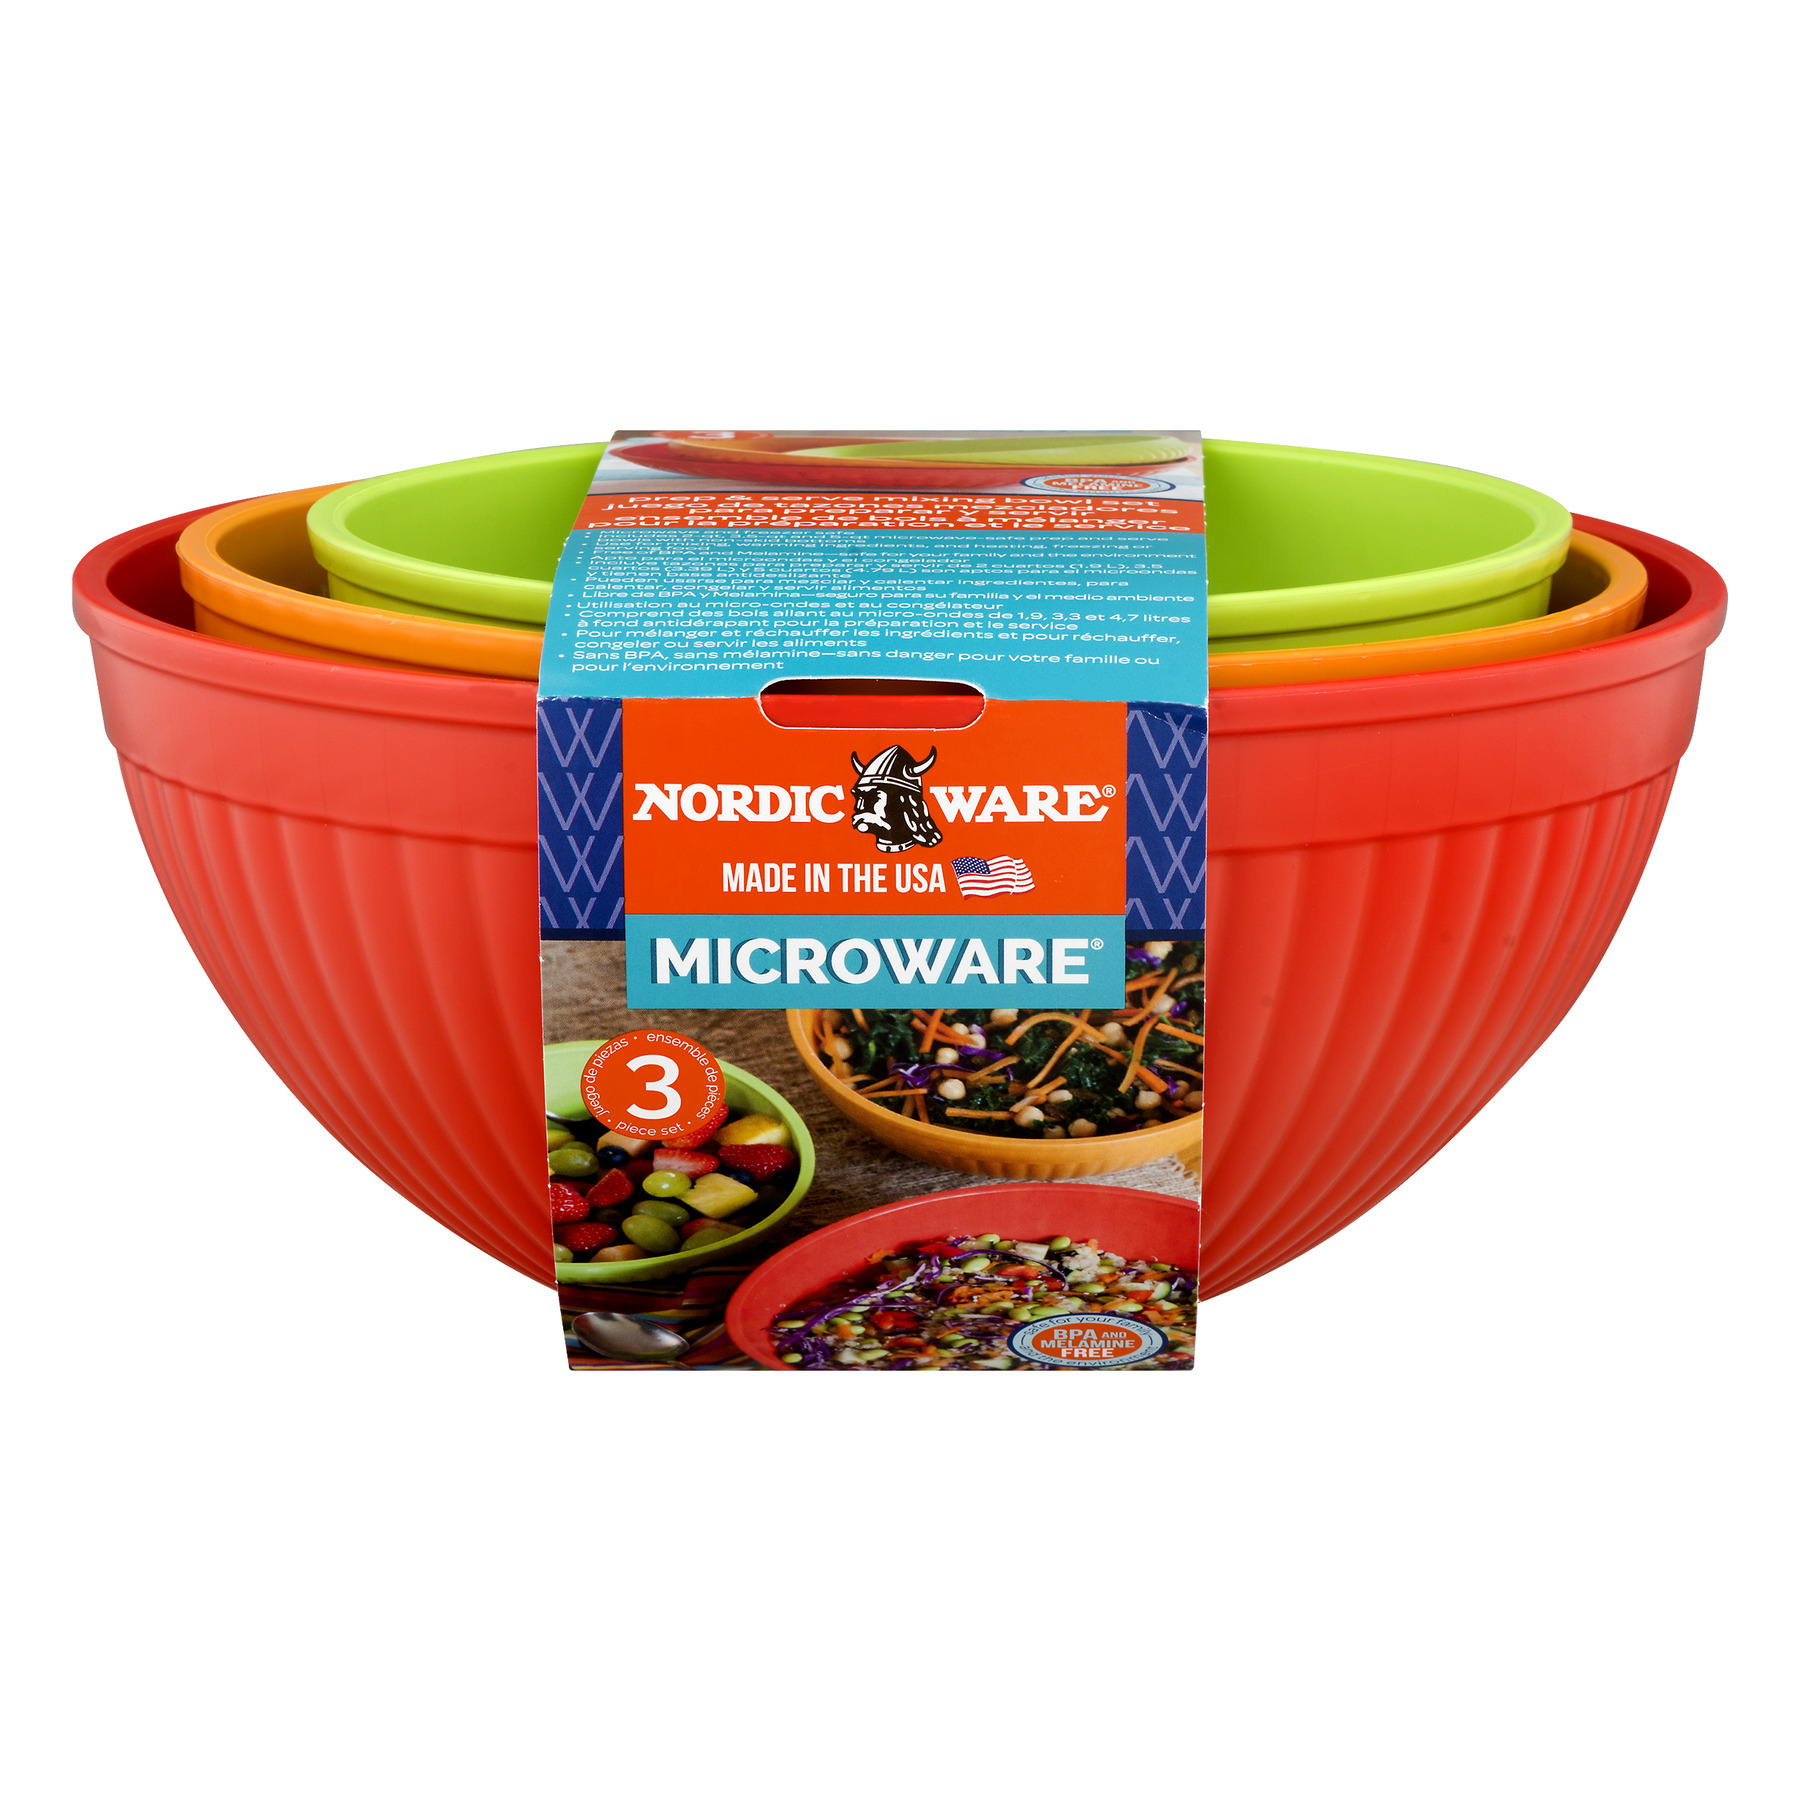 Nordic Ware Prep & Serve Mixing Bowl Set - 3 PC, 3.0 PIECE(S)